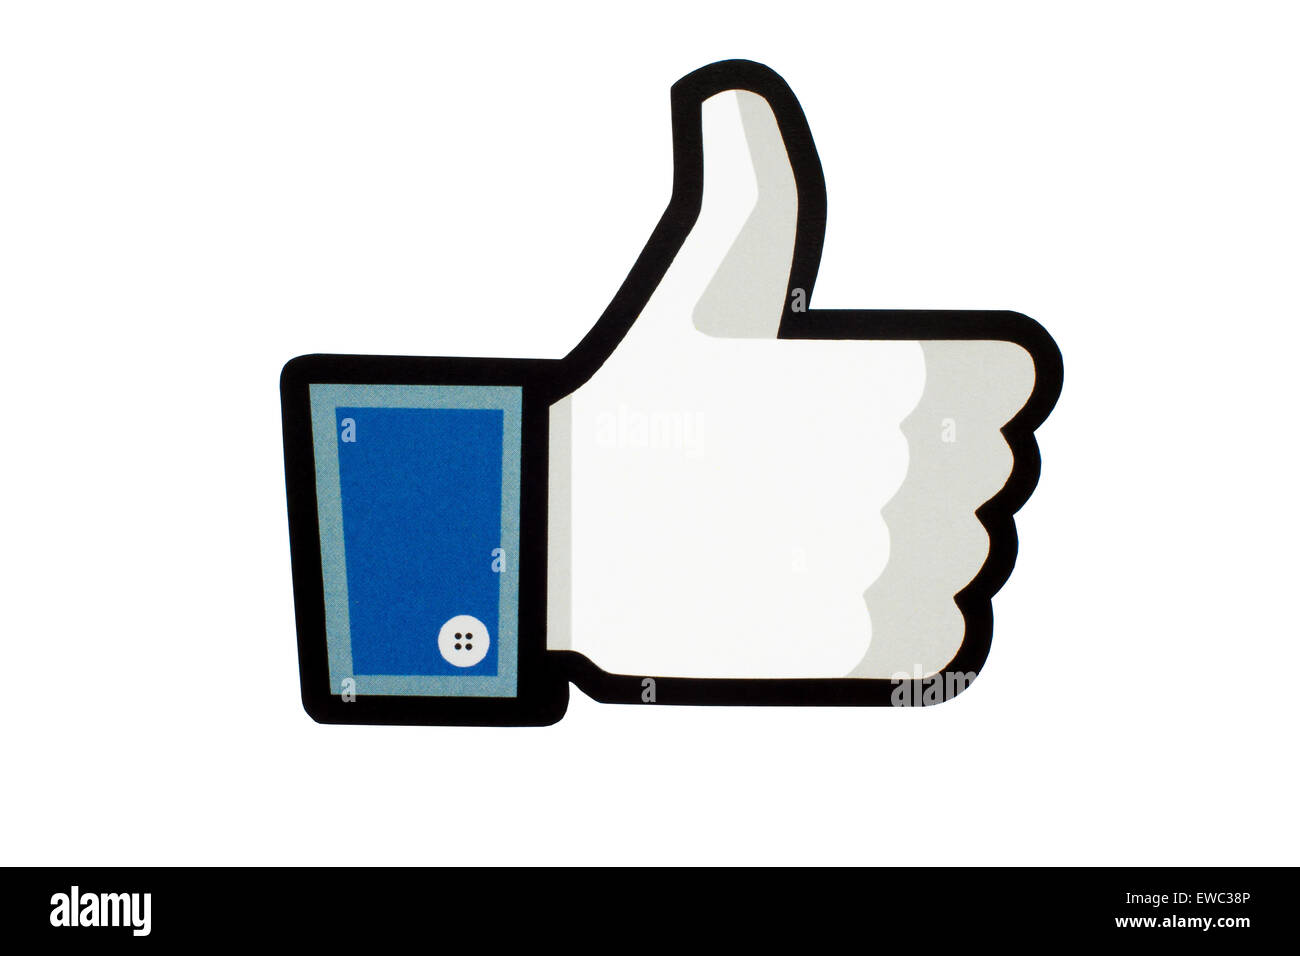 GDANSK, POLAND - MAY 26, 2015. Facebook like logo printed on paper and placed on white background. Facebook is an - Stock Image